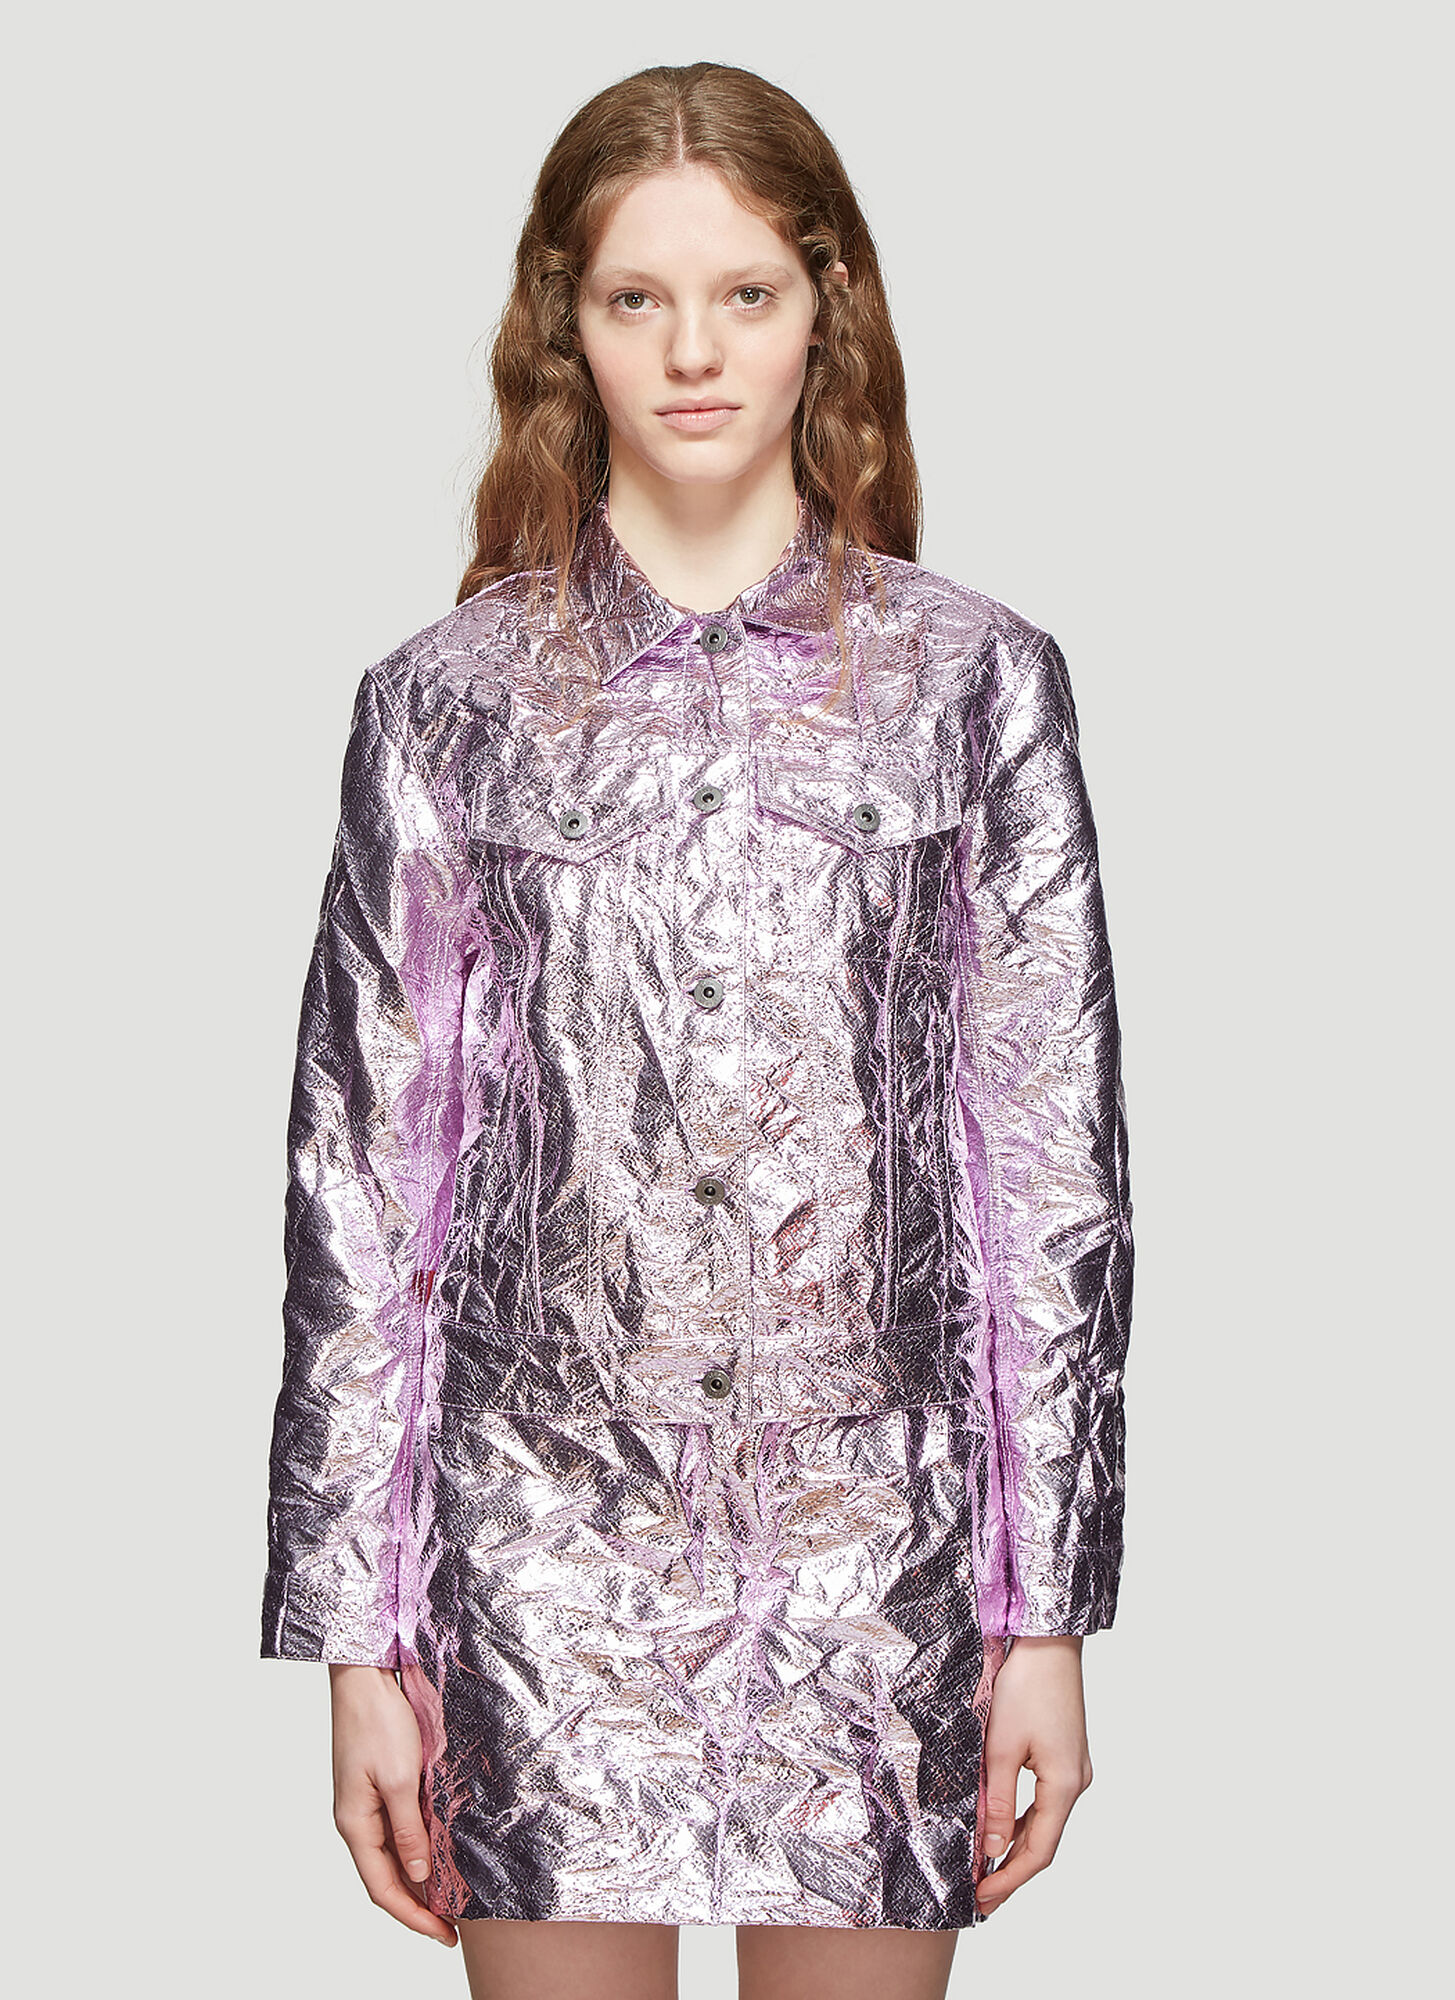 Sies Marjan Alby Laminated Crinkle Cropped Jacket in Pink